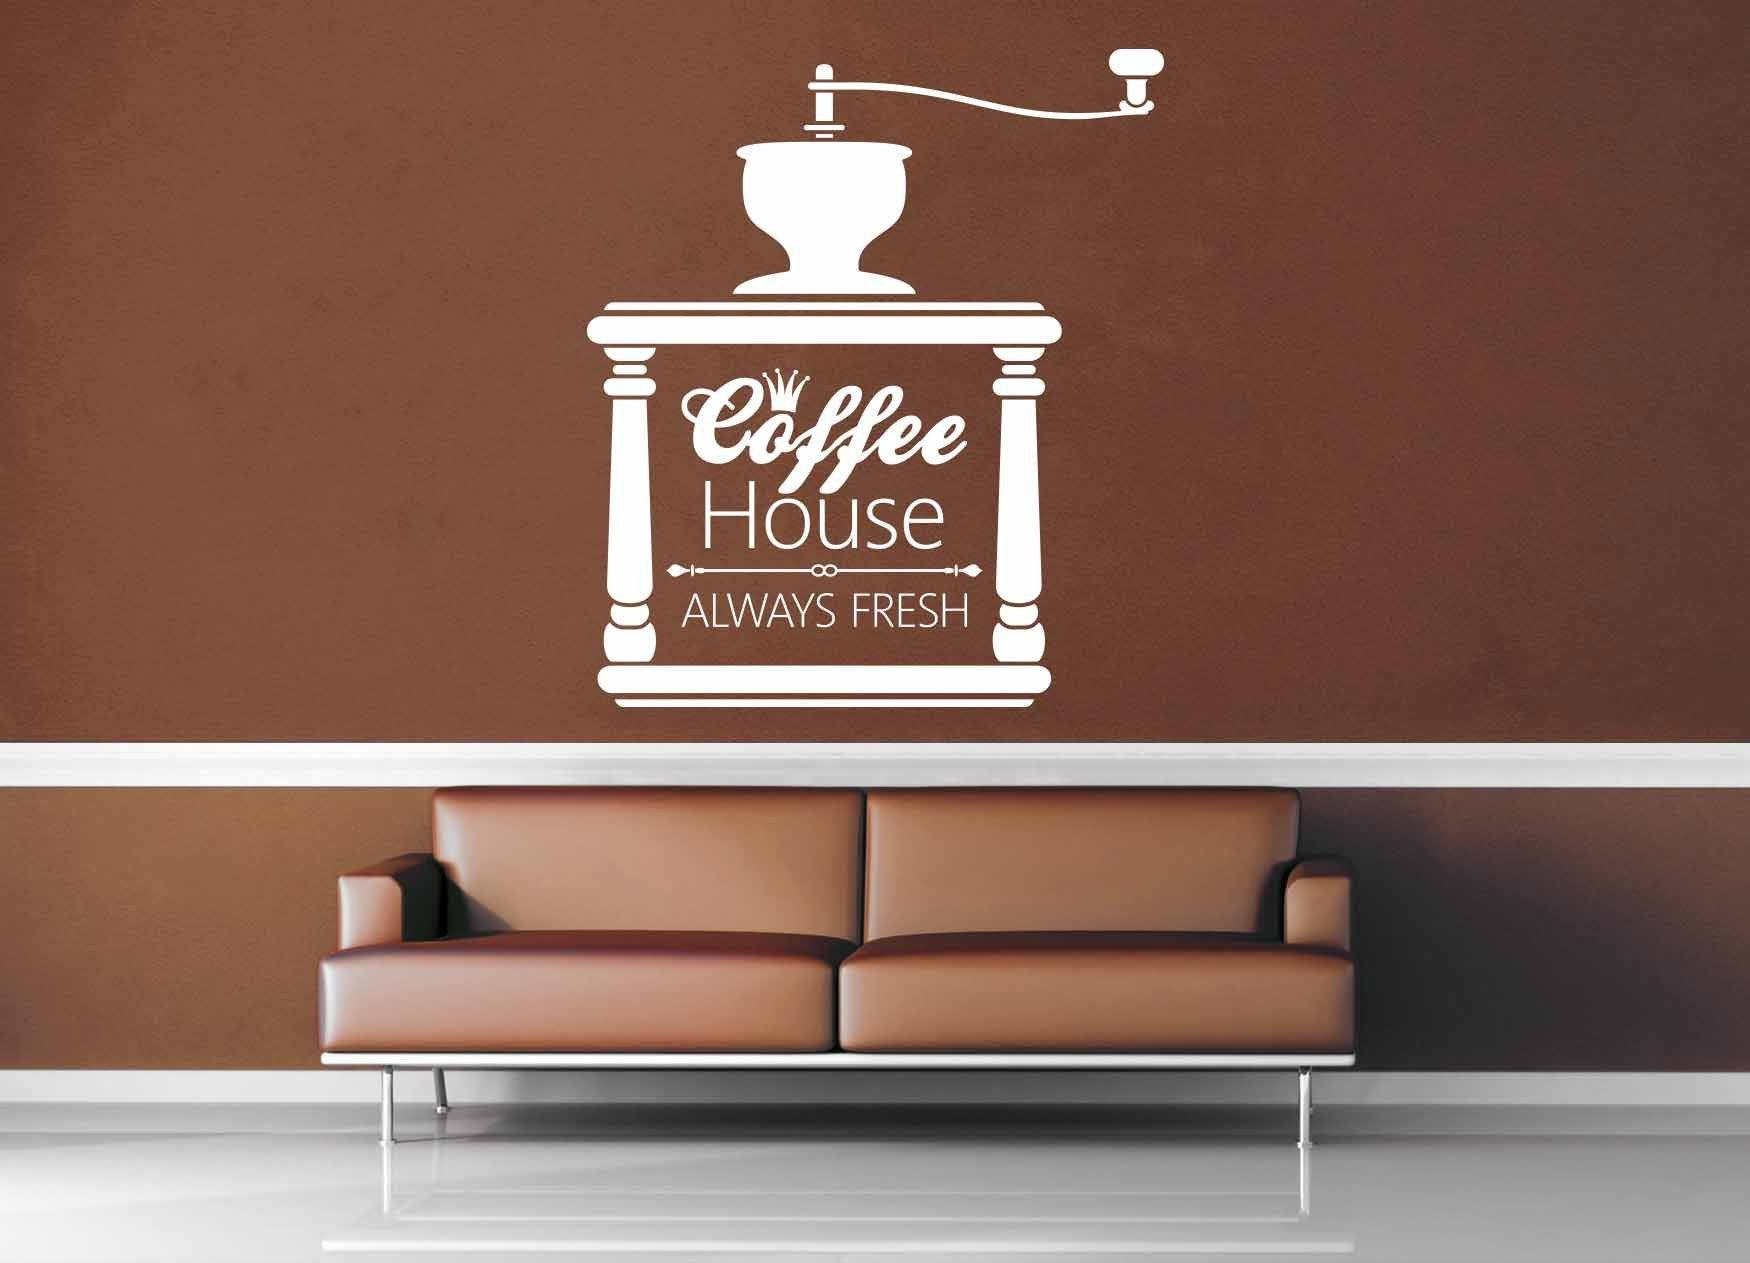 Always Fresh - Vintage Café Sign - Wall Decal - No 1